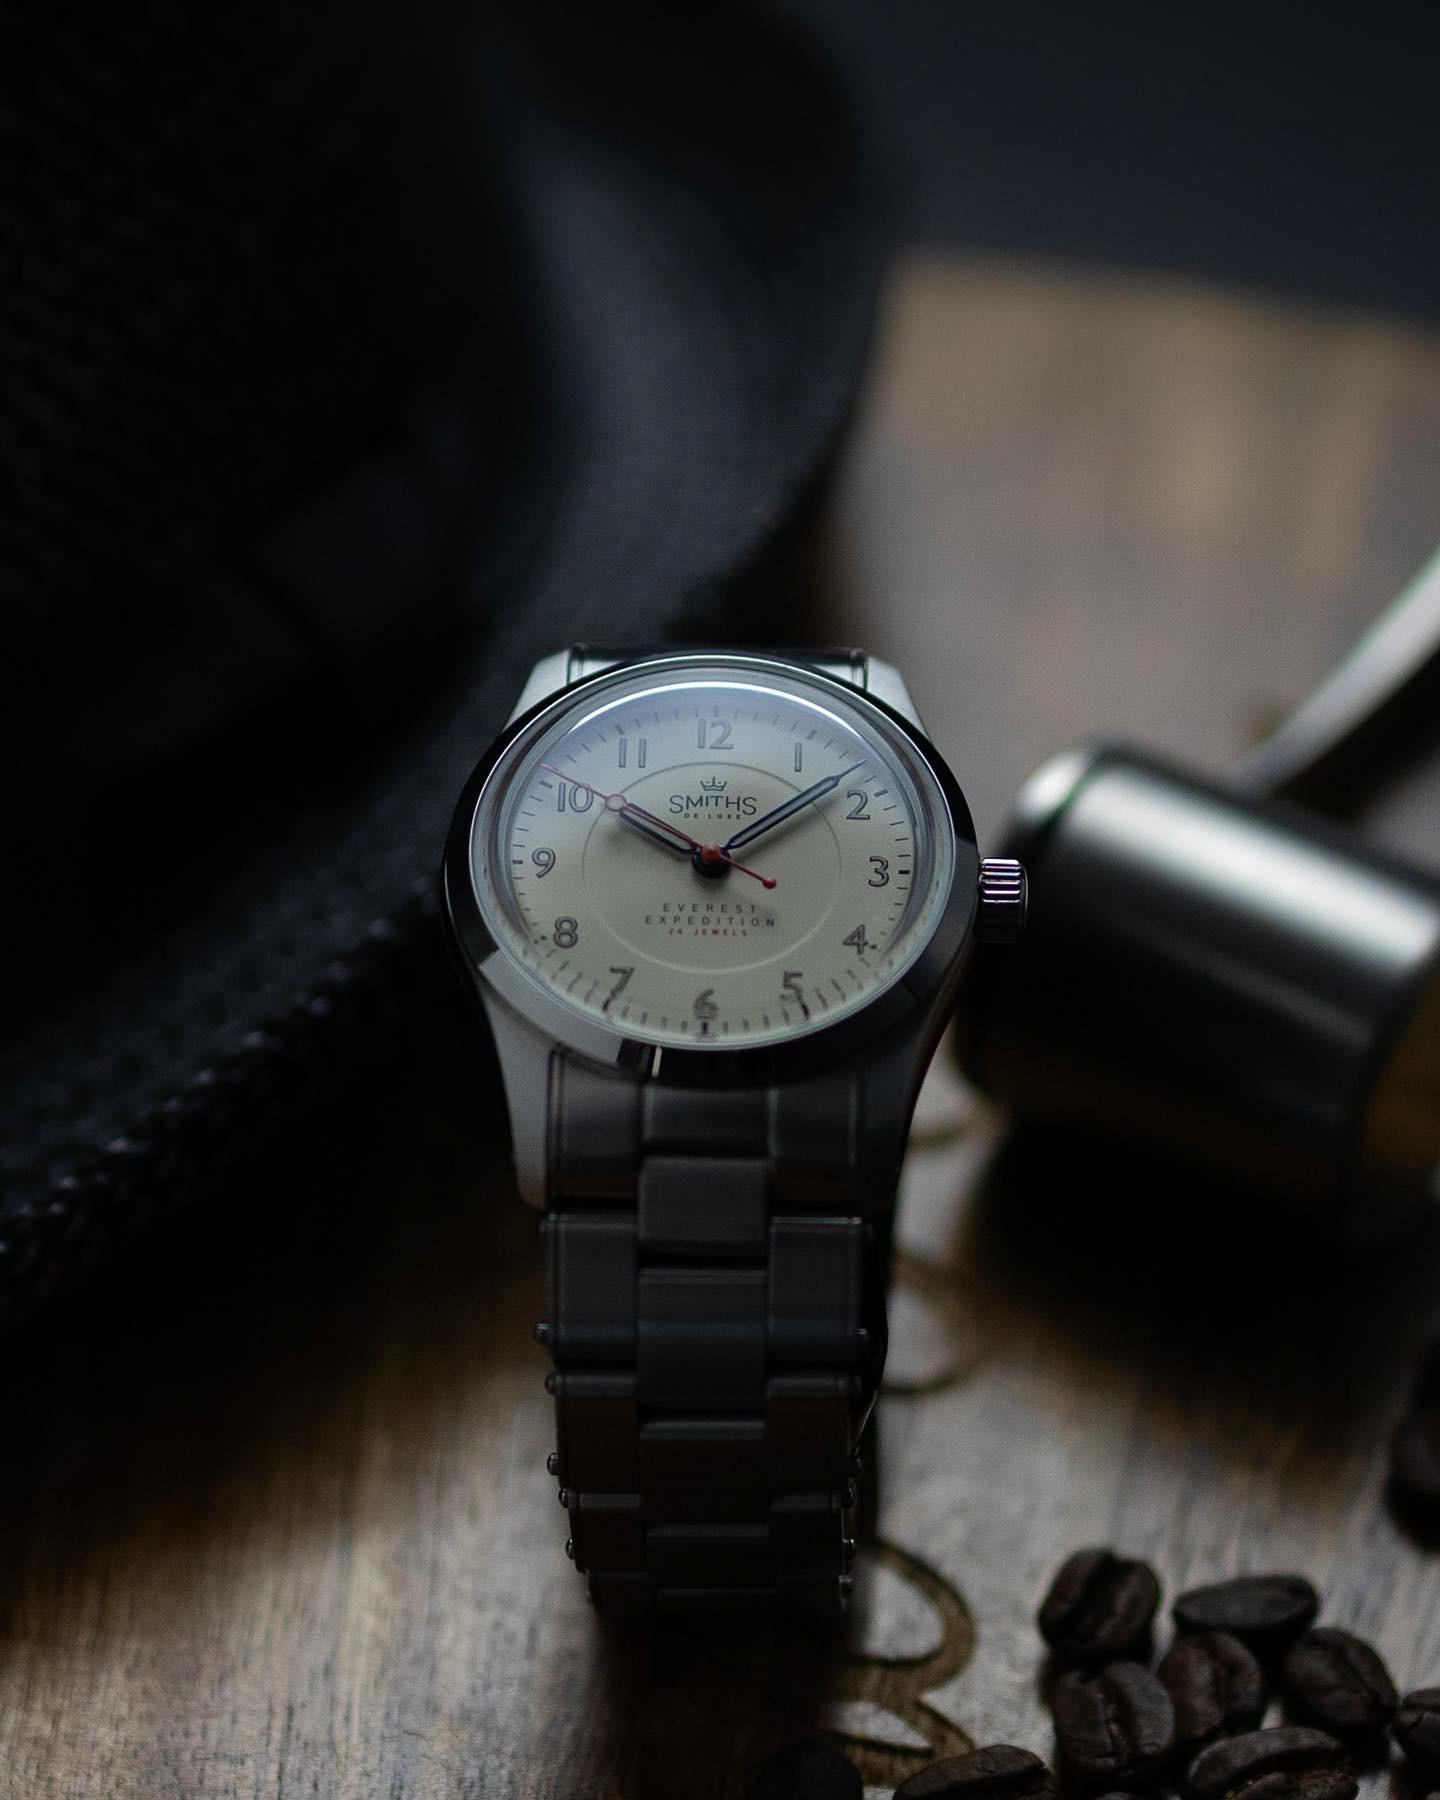 A silver watch on a wrist  Description automatically generated with low confidence